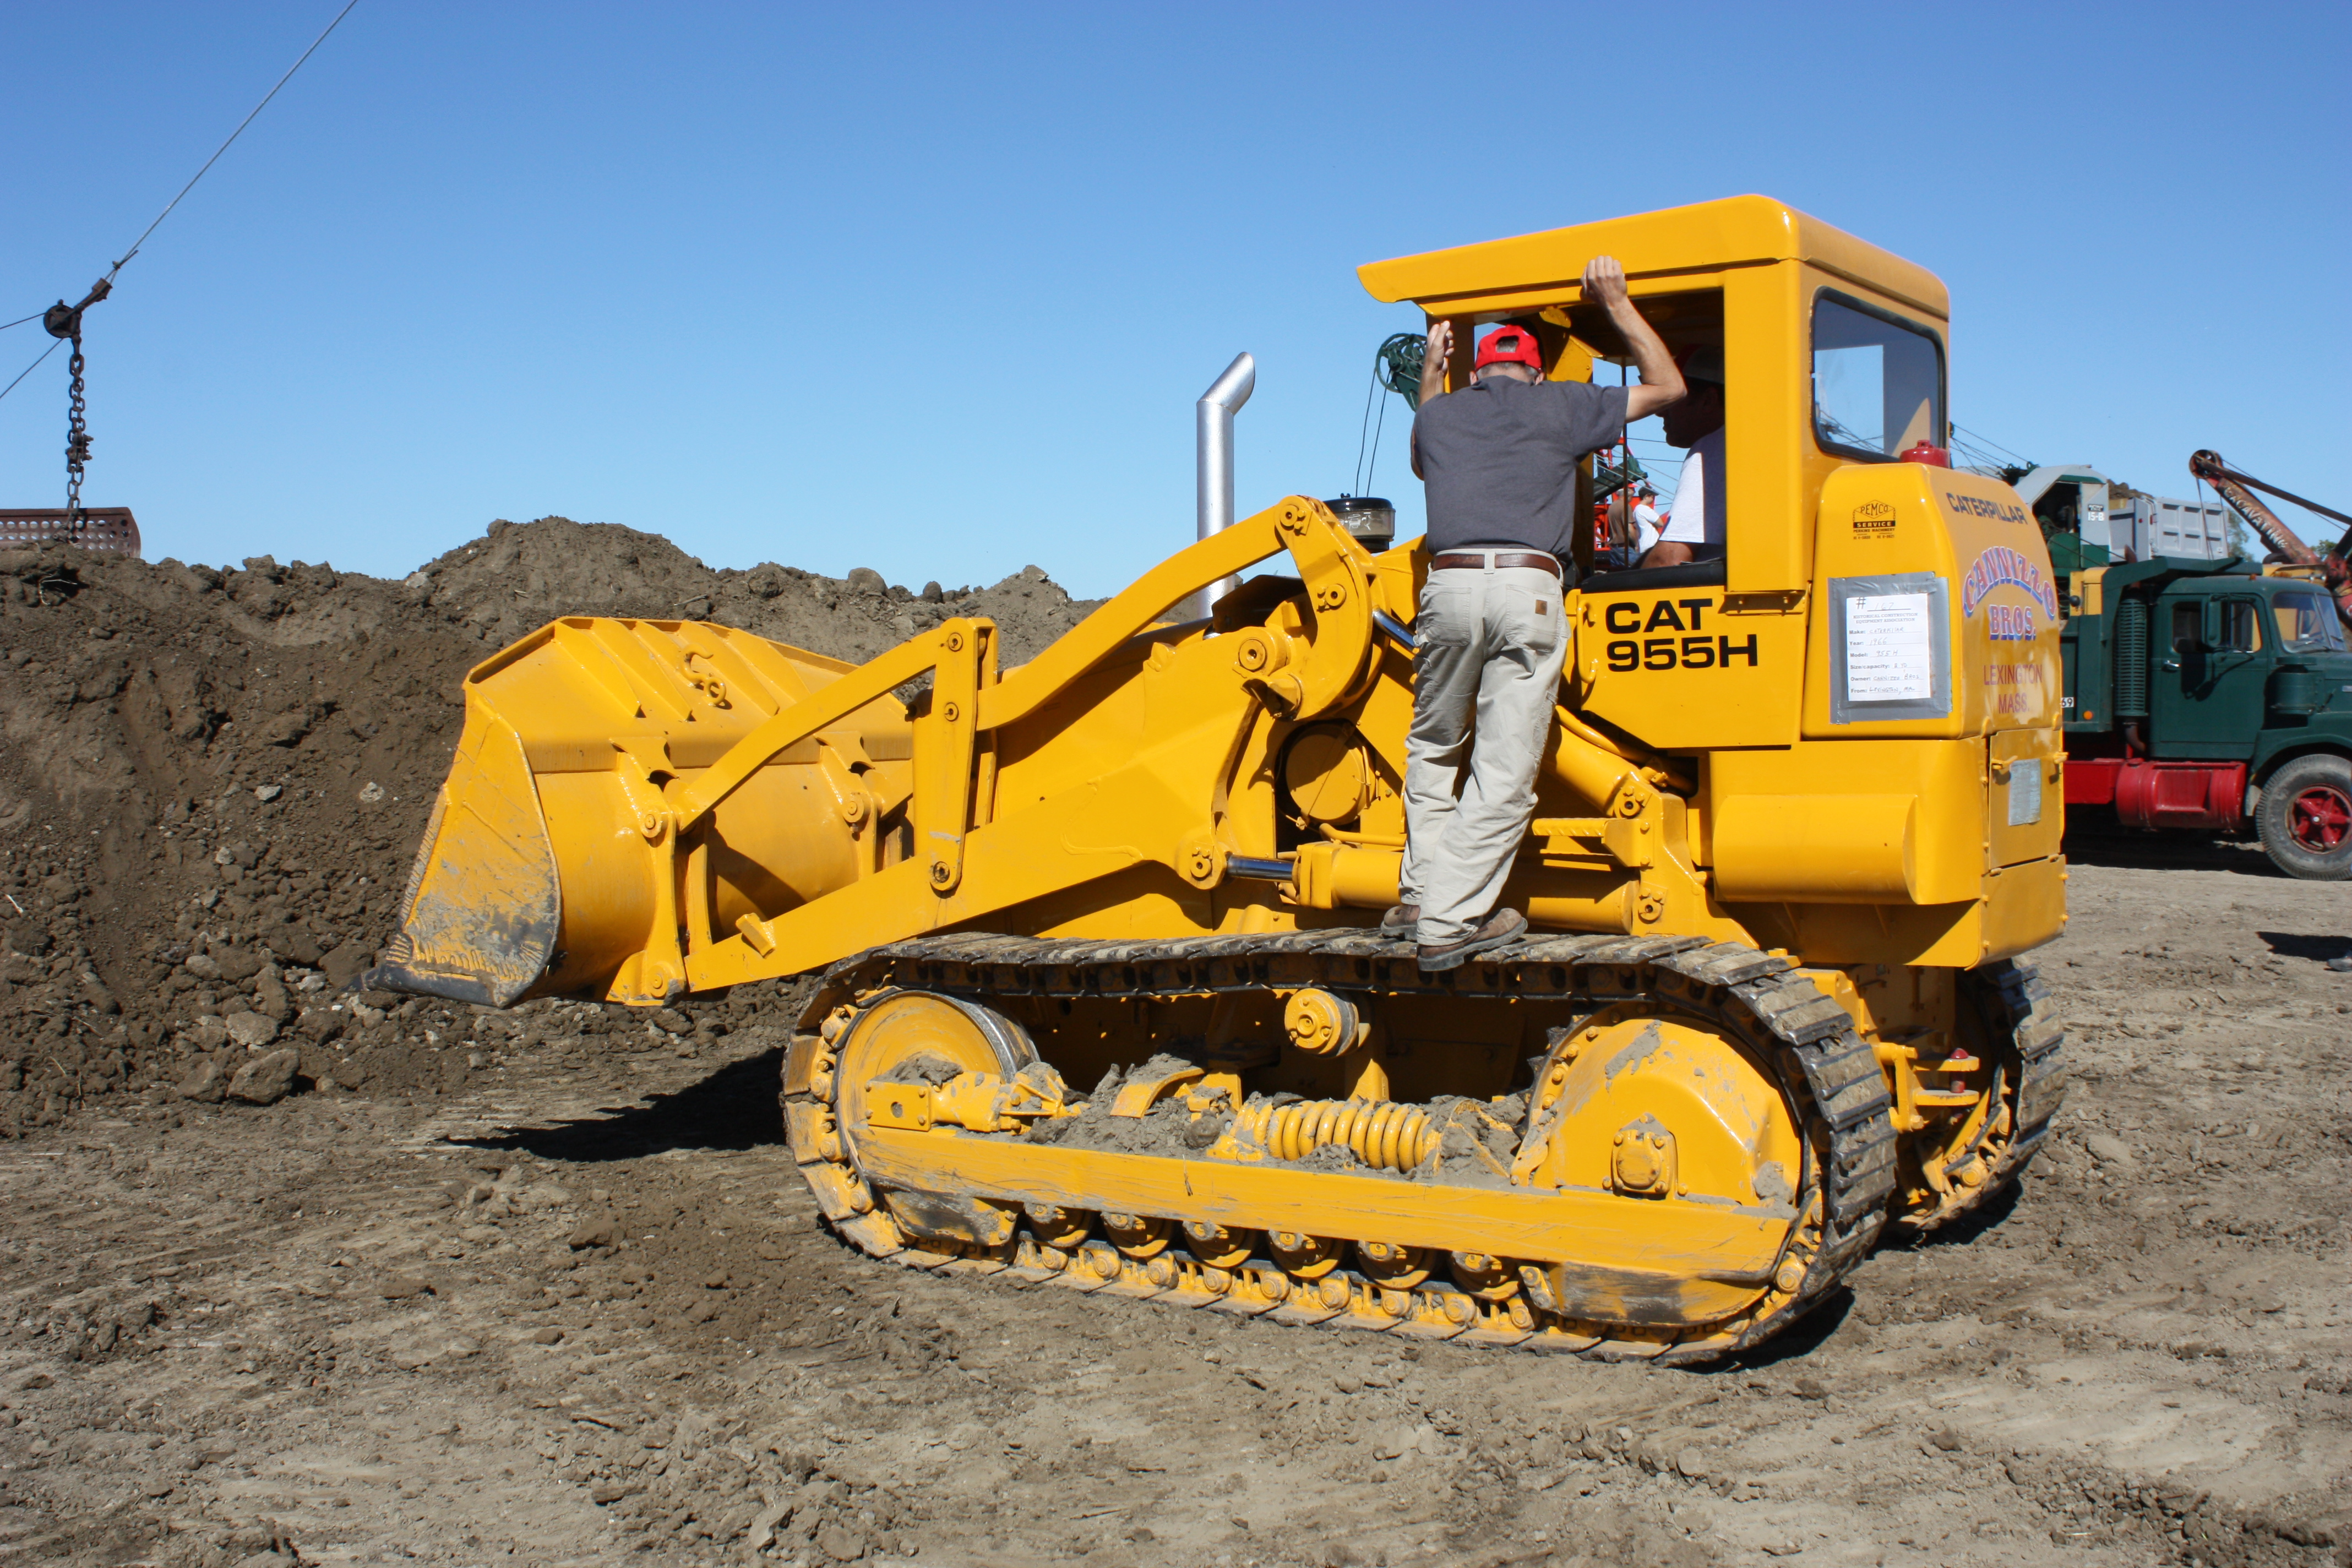 Traxcavator  macchine Caterpillar-955h-track-loader-hcea-show-2012